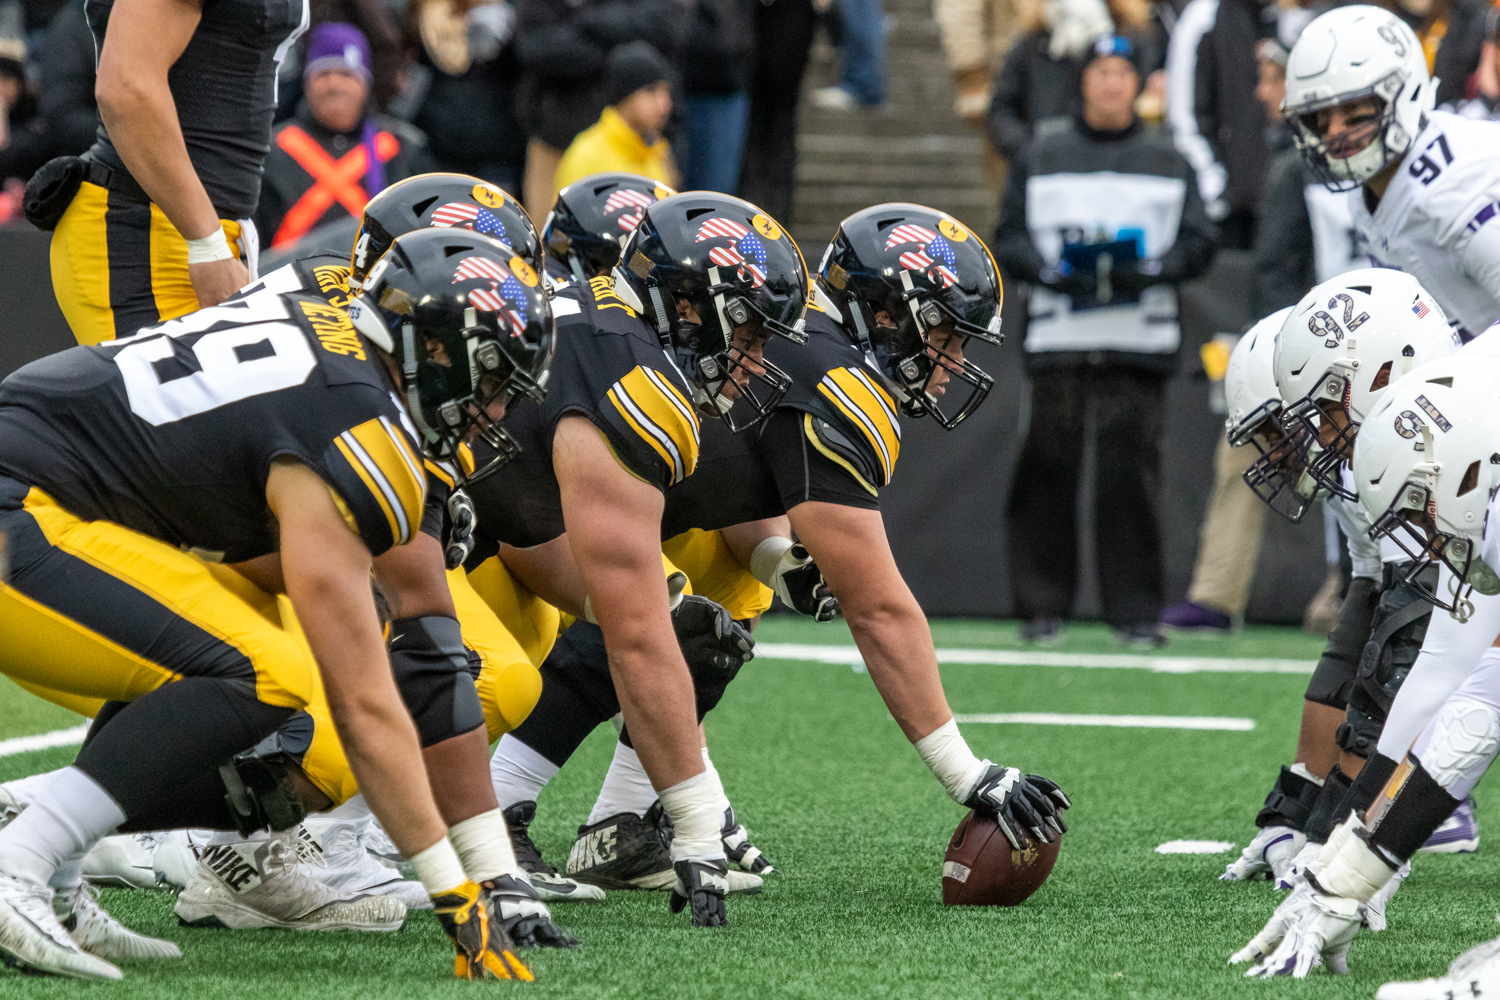 The Iowa offensive line squares up against the Northwestern defense during a game against Northwestern University on Saturday, Nov. 10, 2018 at Kinnick Stadium in Iowa City. The Wildcats defeated the Hawkeyes 14-10.